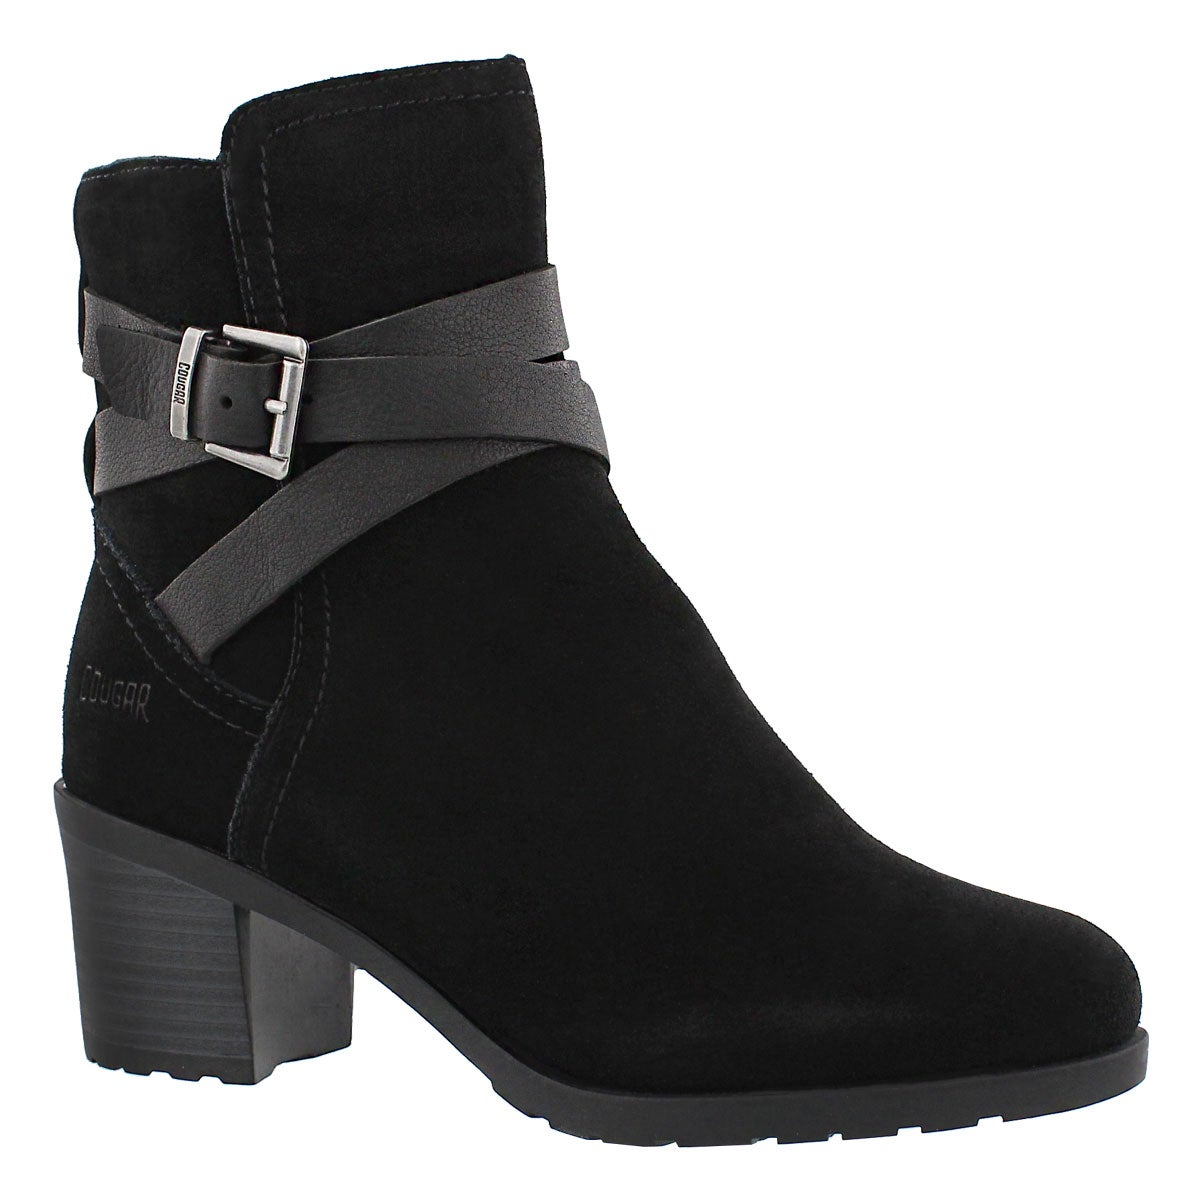 Women's ARVIDA black waterproof ankle boots